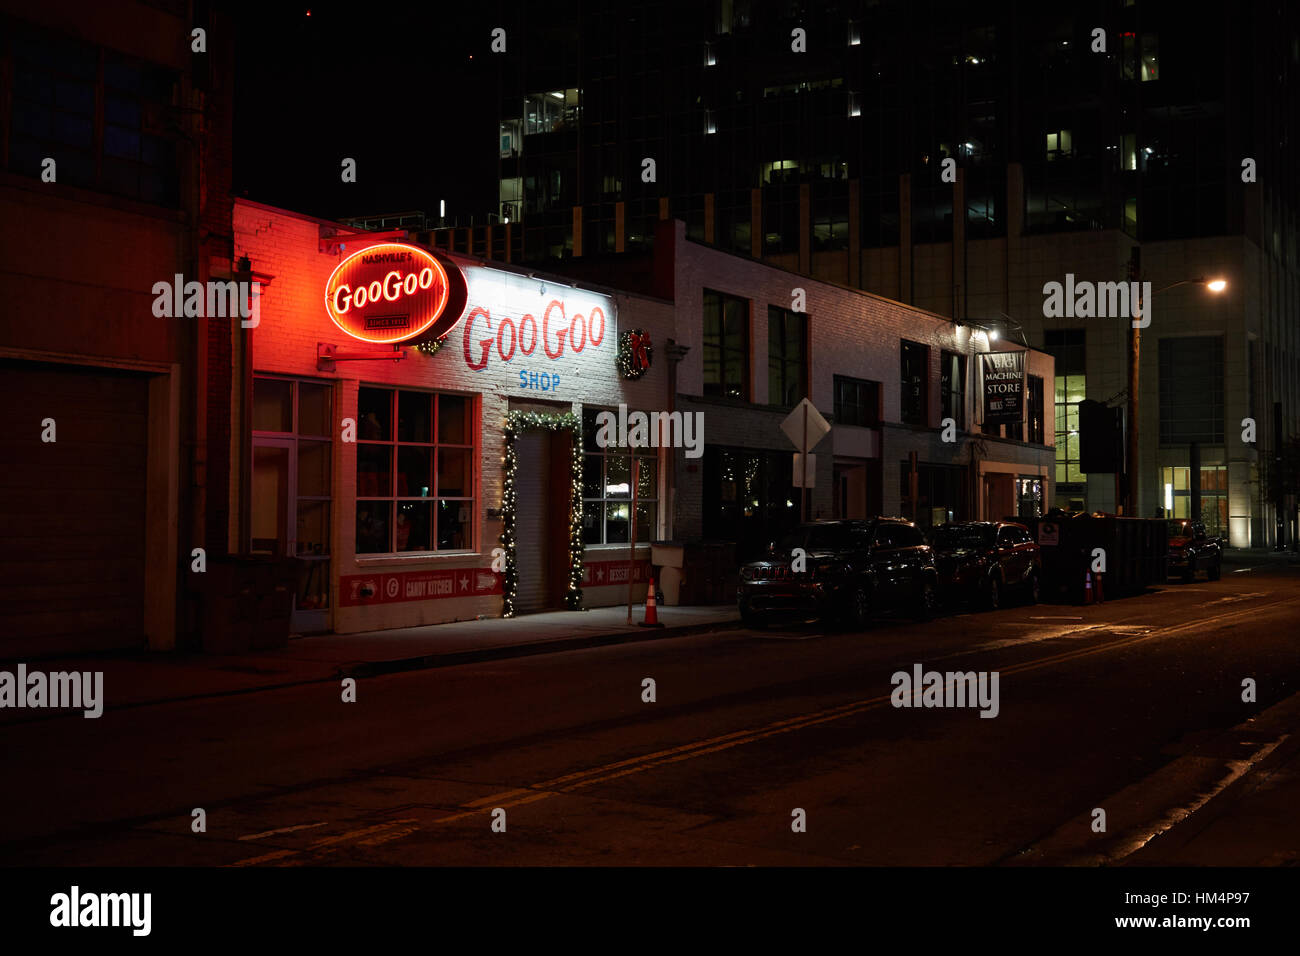 The Goo Goo Shop in Nashville, Tennessee at night Stock